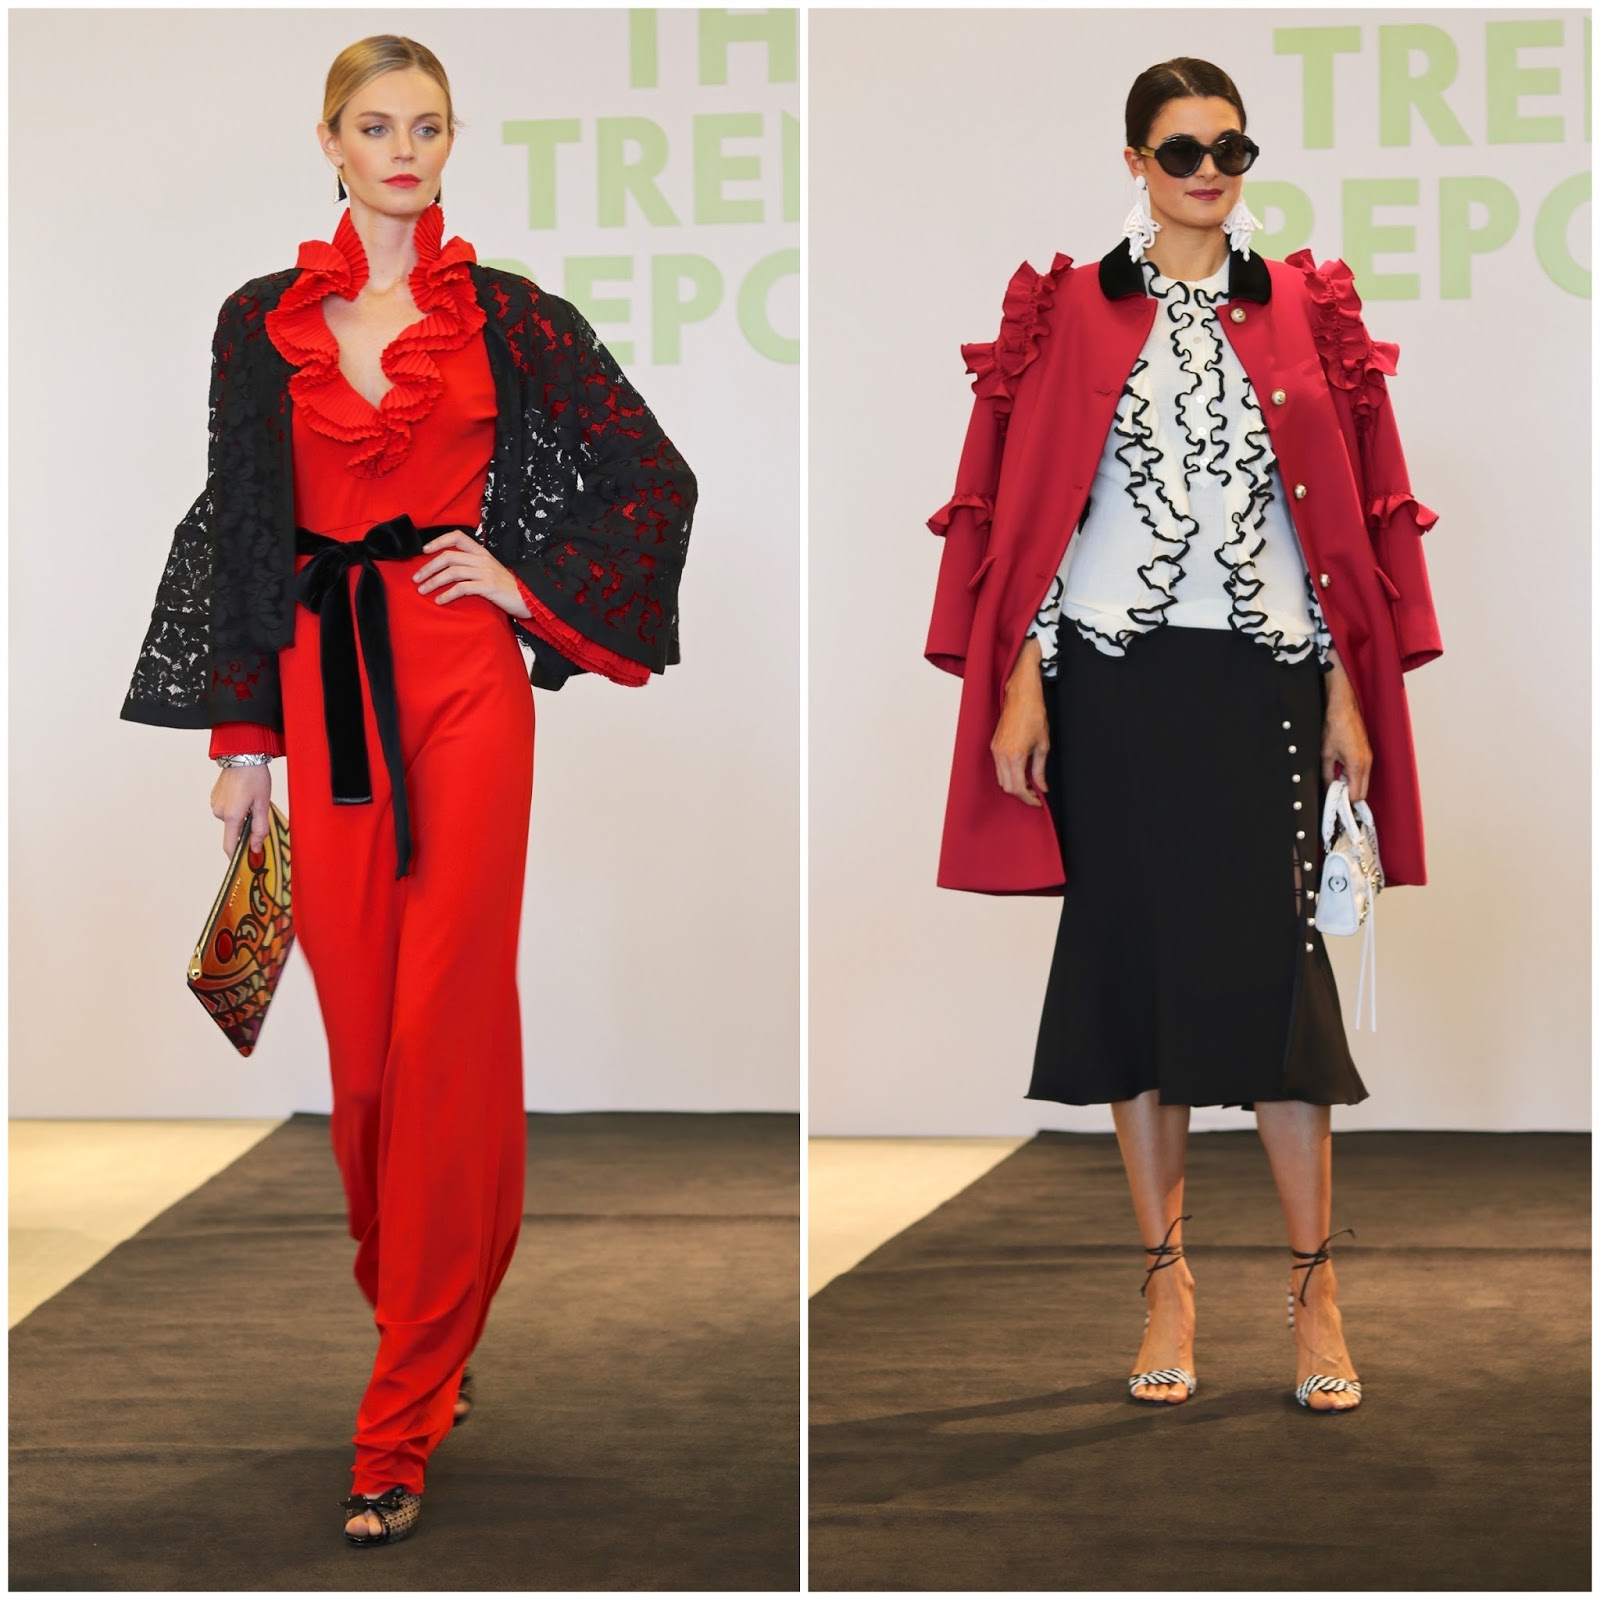 spring 2017 trends with neiman marcus lil bits of chic by